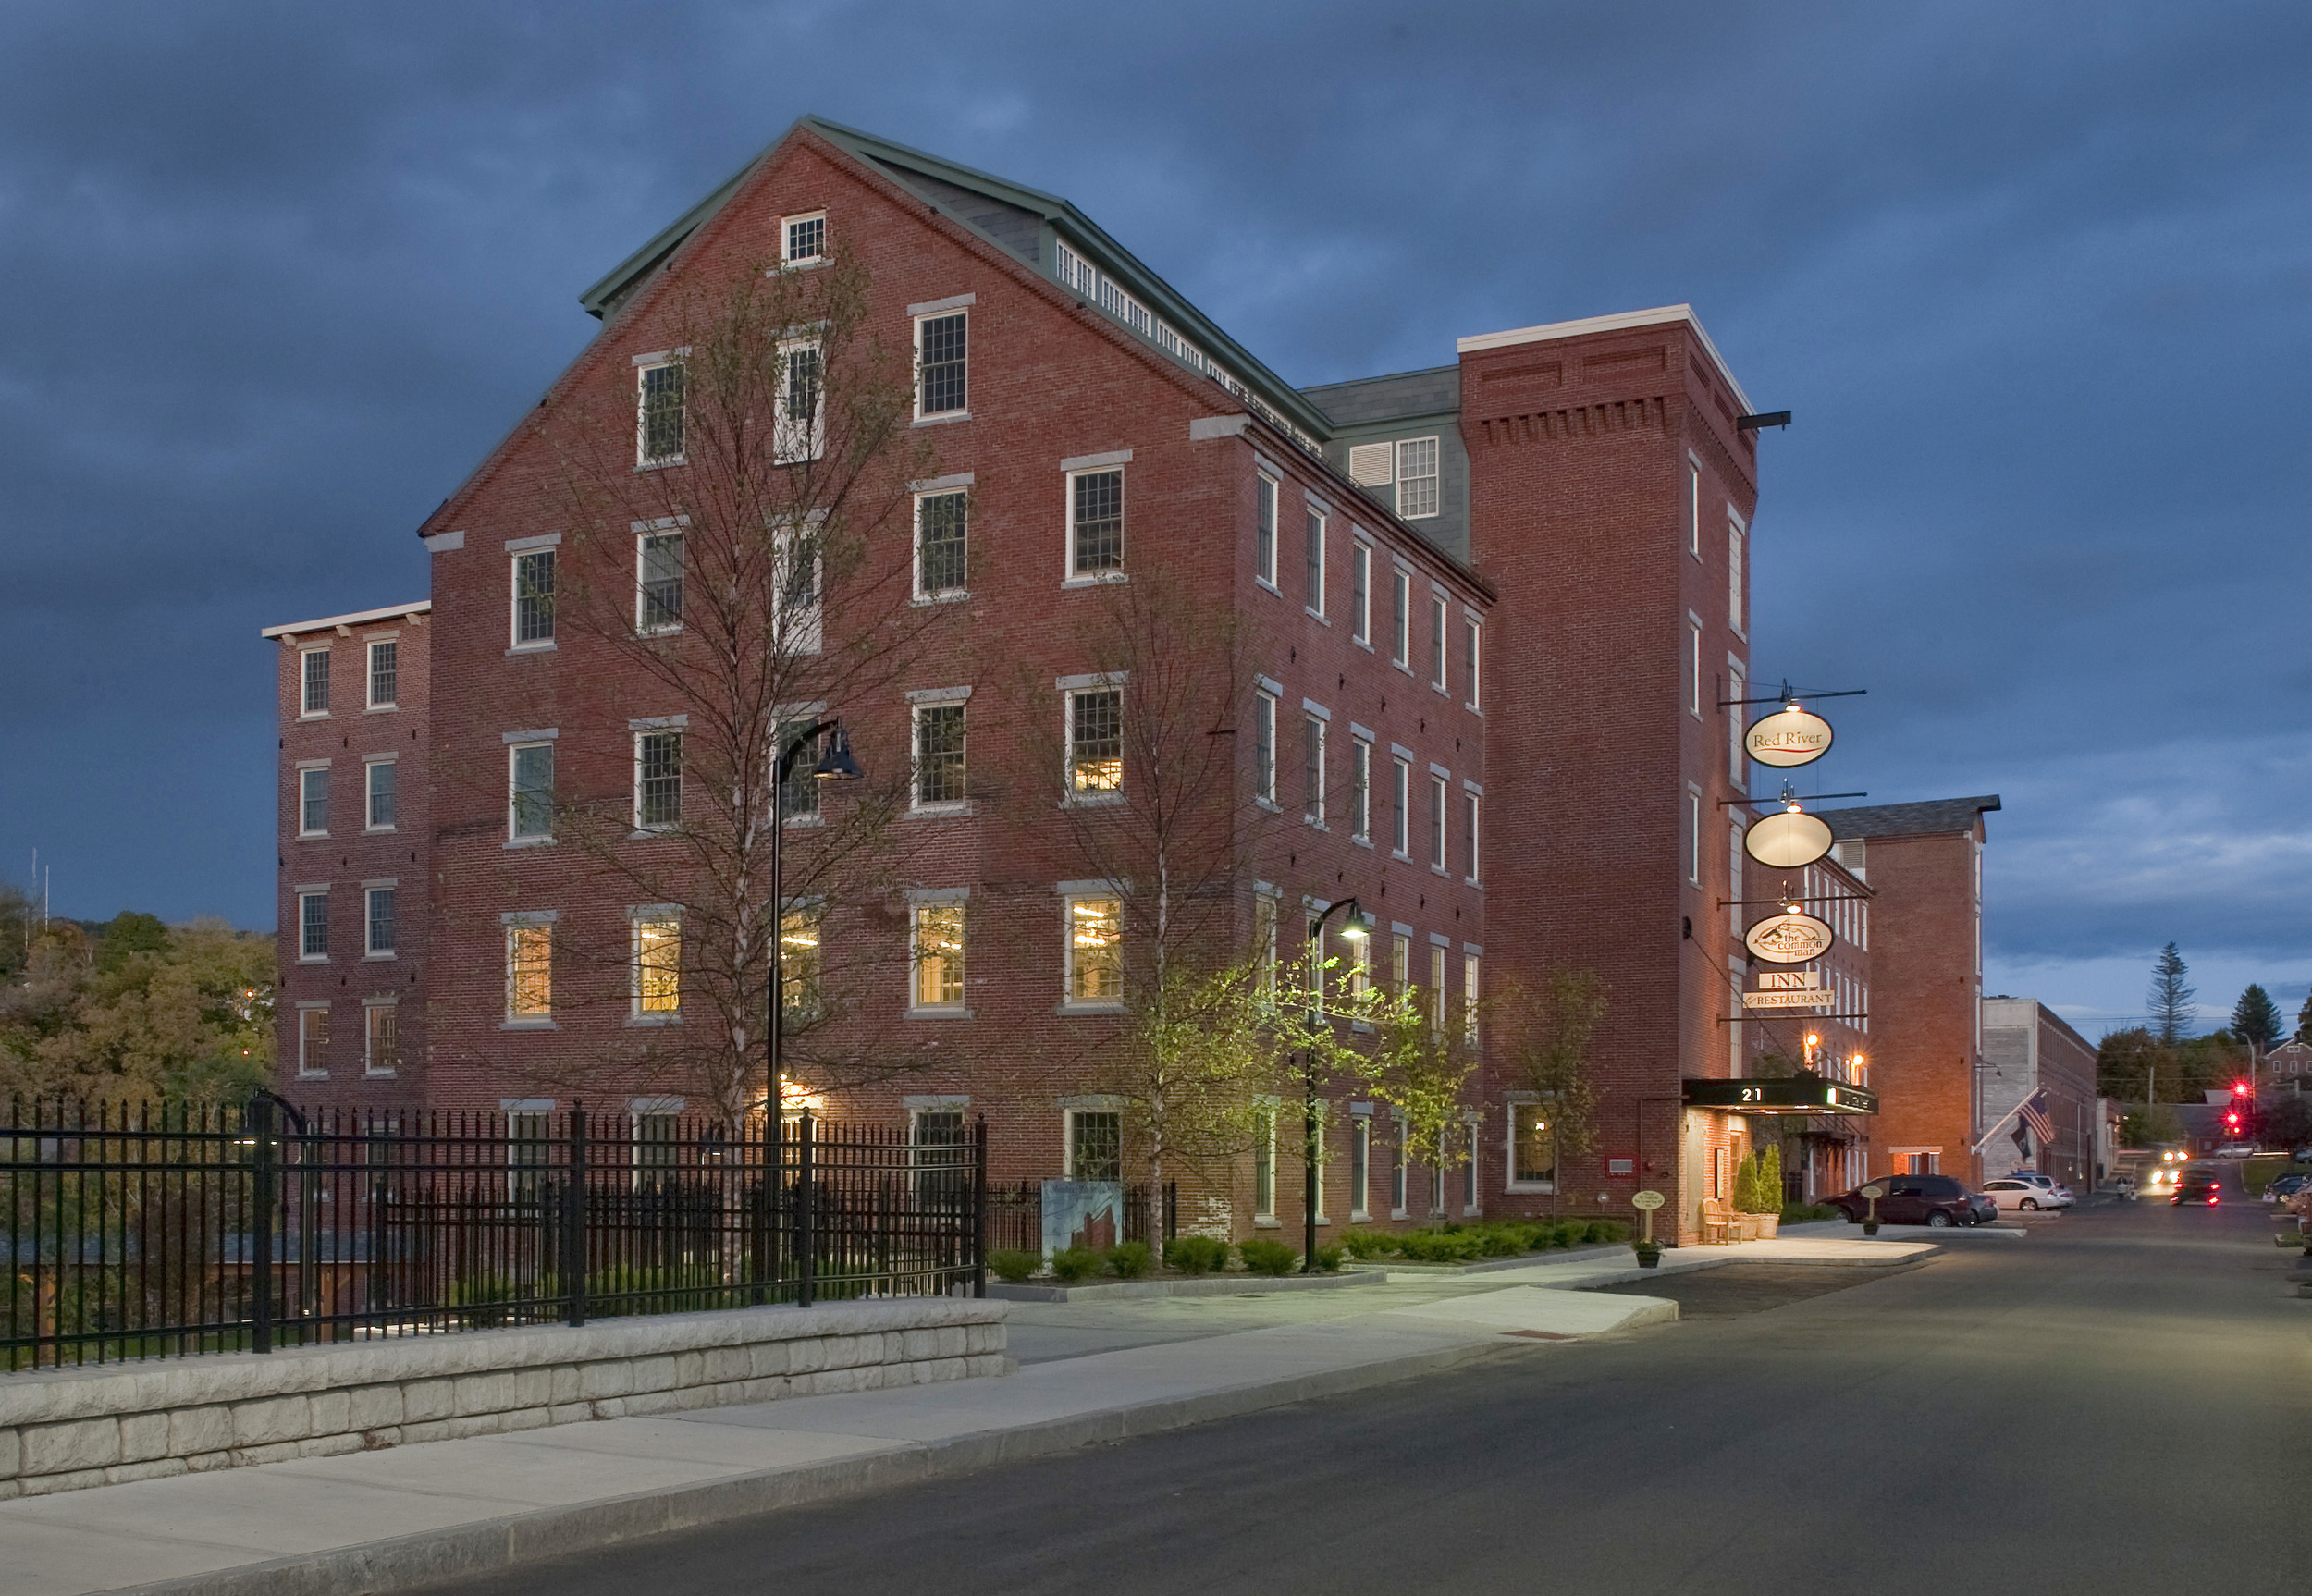 This award-winning project consists of two mill buildings built in 1853 and 1912, which form one structure and are considered to be the most important buildings in Claremont, New Hampshire's historic mill district.